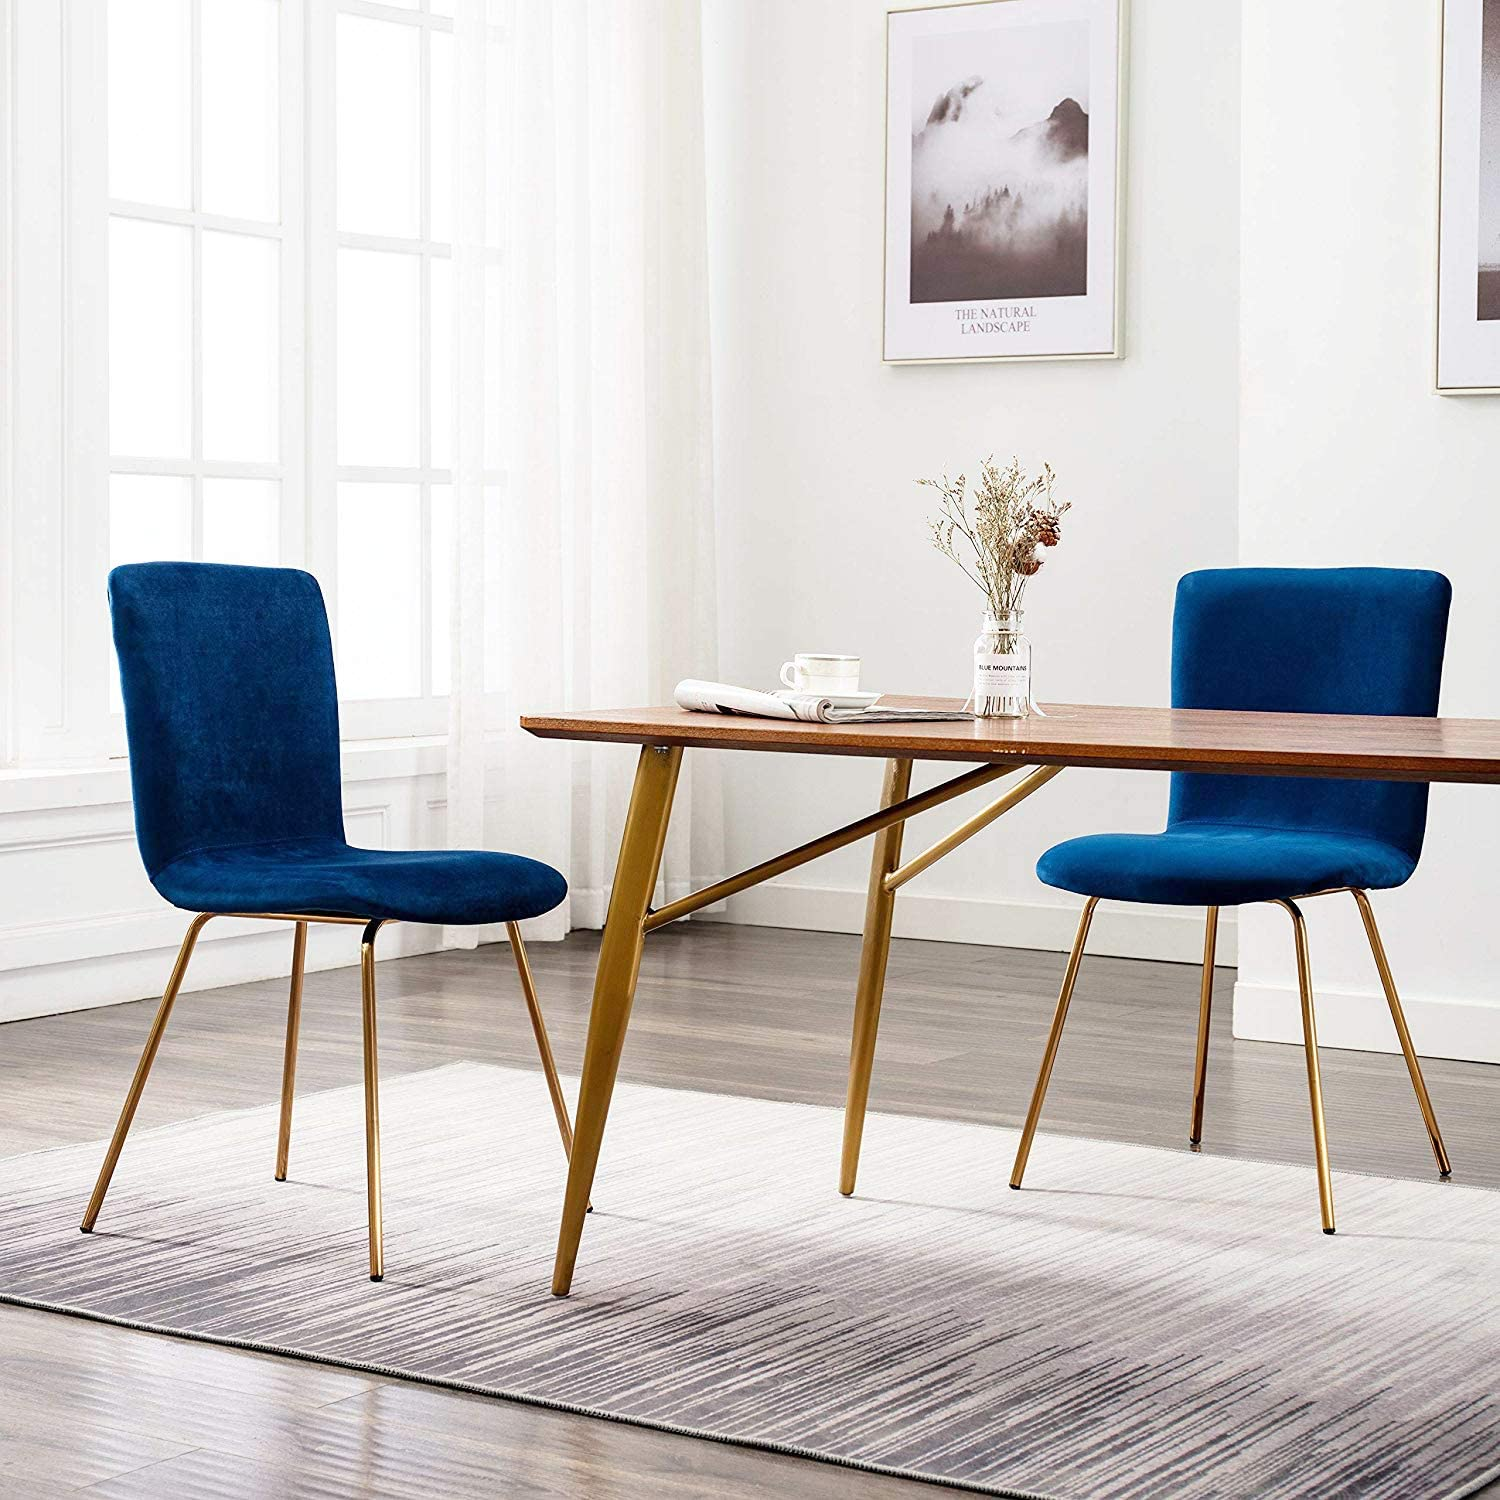 Art-Leon Mid-Century Modern Velvet Fabric Dining Chairs Set of 2 with Golden Legs and Floor Protector (Royal Blue)